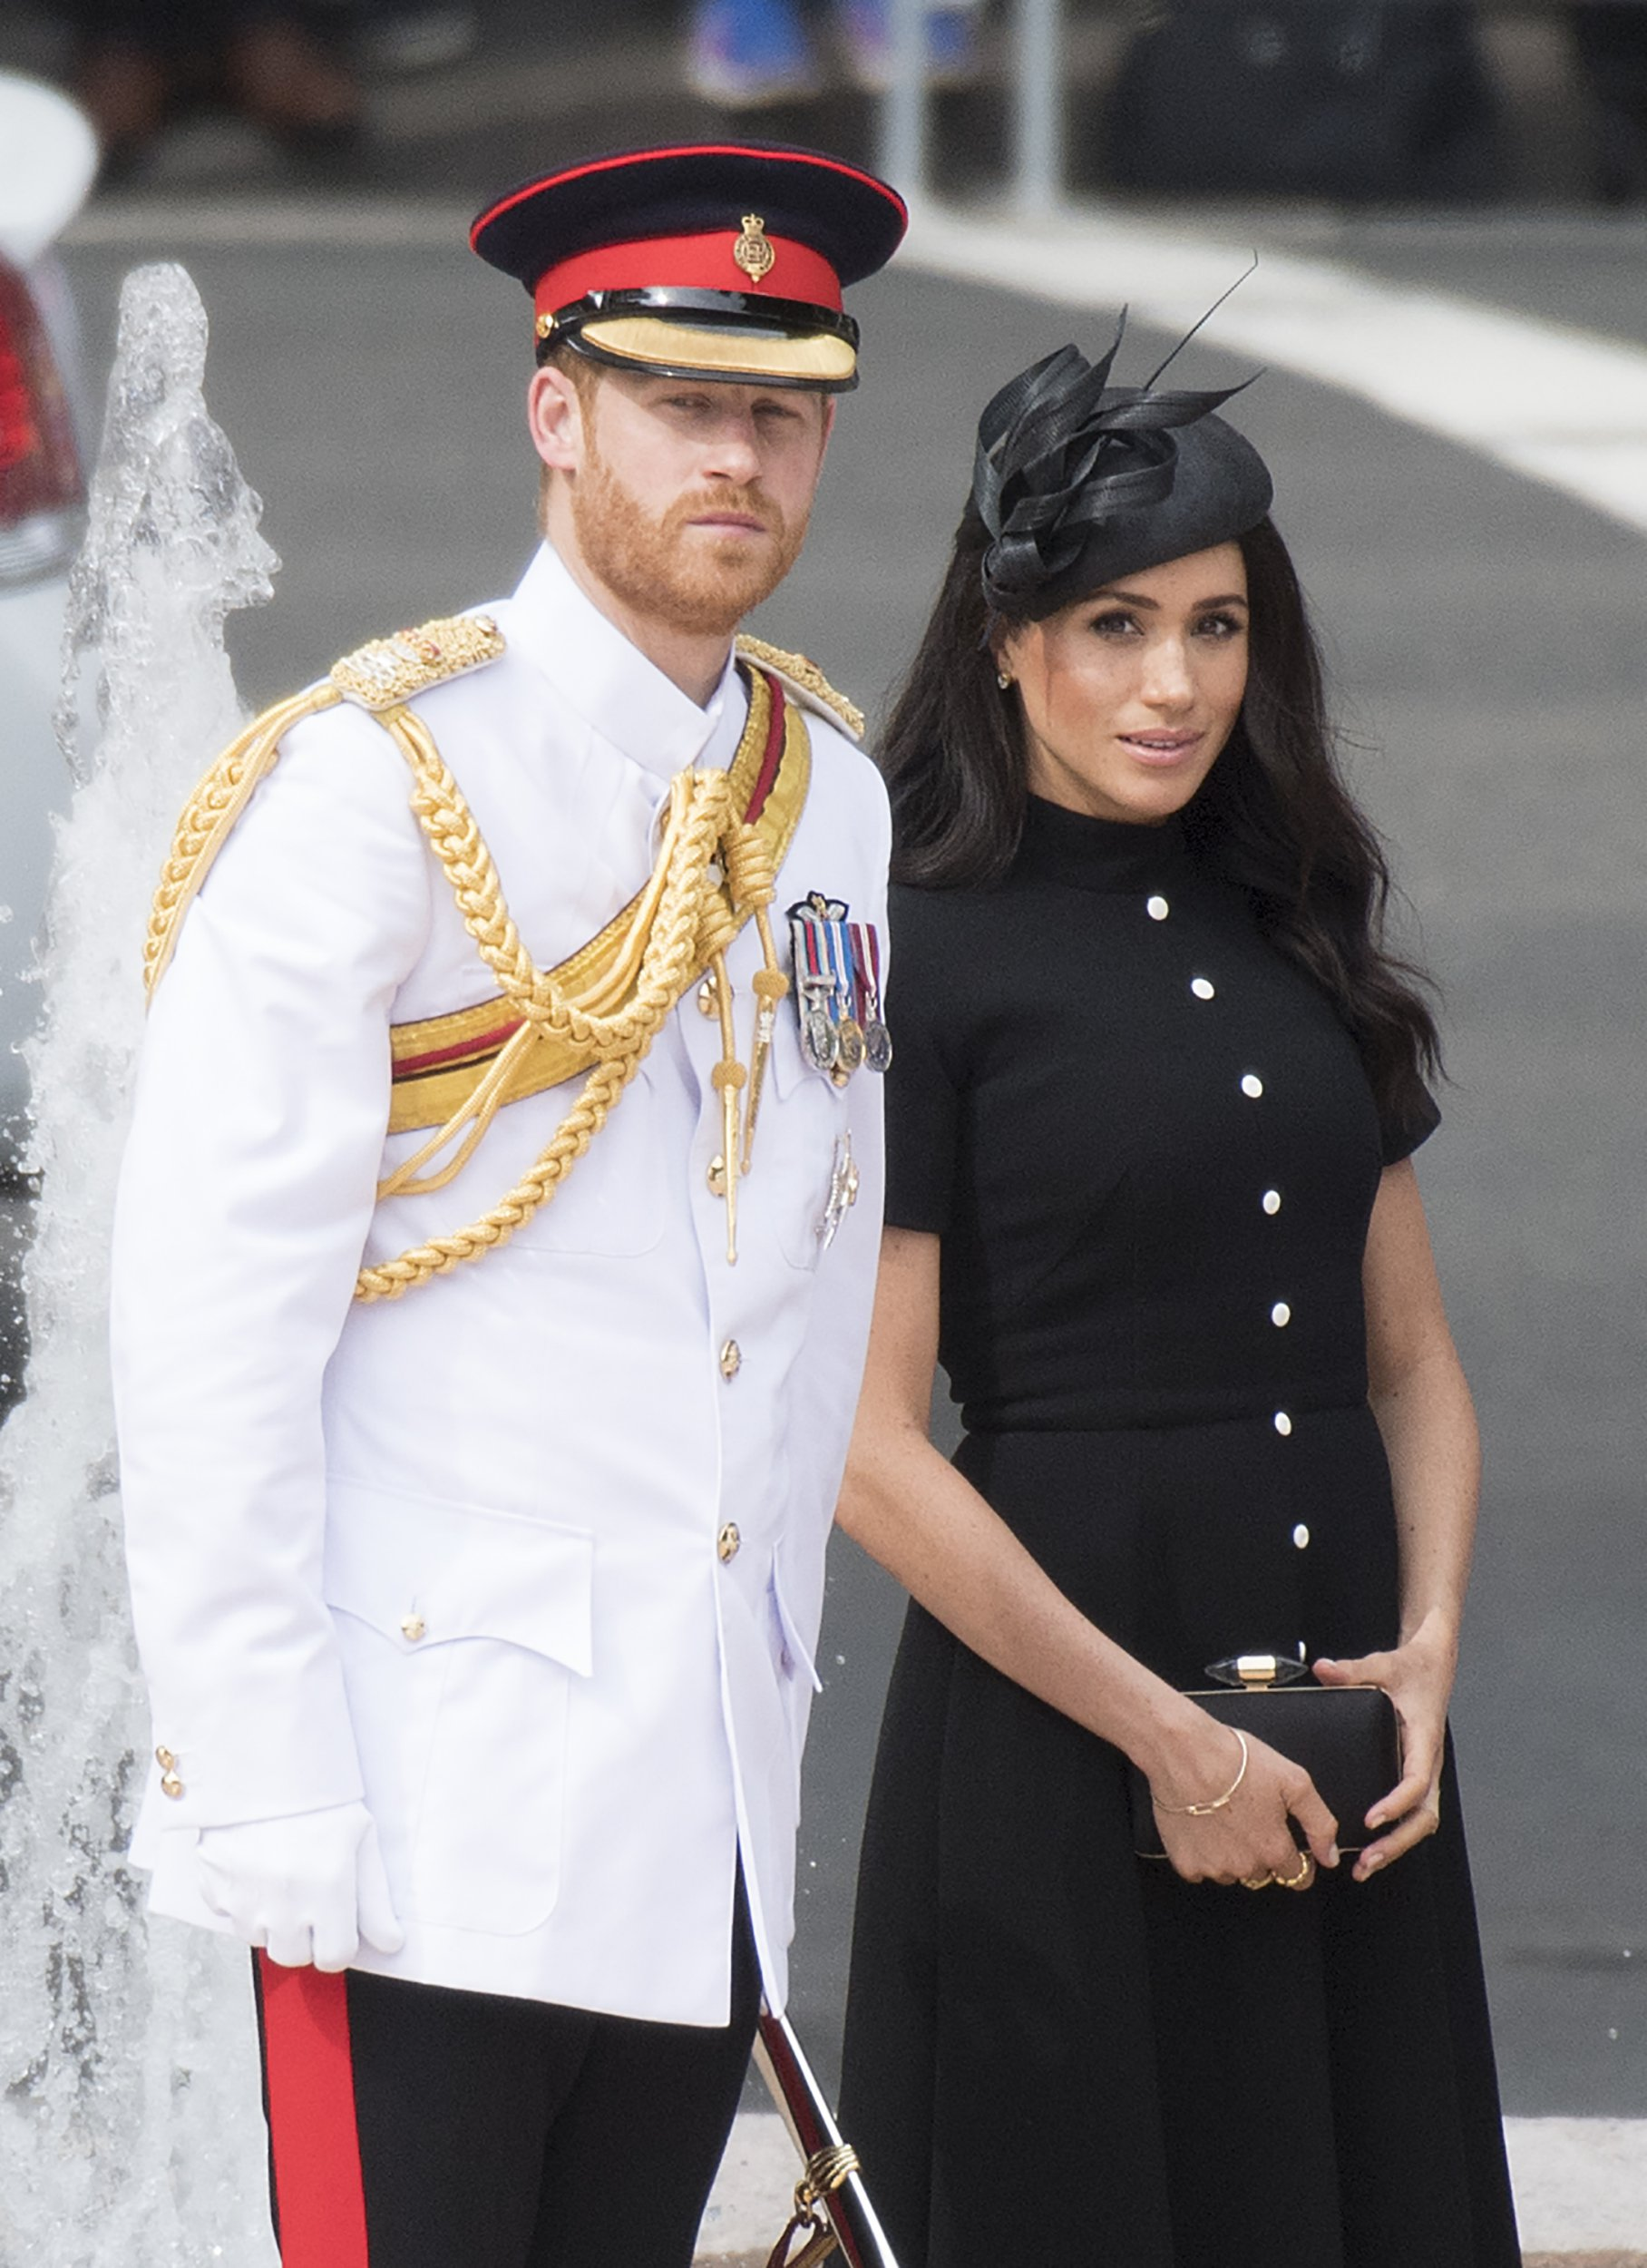 Prince Harry, the Duke of Sussex and Meghan, the Duchess of Sussex attend the opening of the enhanced Anzac Memorial in Sydney Pictured: Ref: SPL5034883 201018 NON-EXCLUSIVE Picture by: SplashNews.com Splash News and Pictures Los Angeles: 310-821-2666 New York: 212-619-2666 London: 0207 644 7656 Milan: +39 02 4399 8577 Sydney: +61 02 9240 7700 photodesk@splashnews.com World Rights,